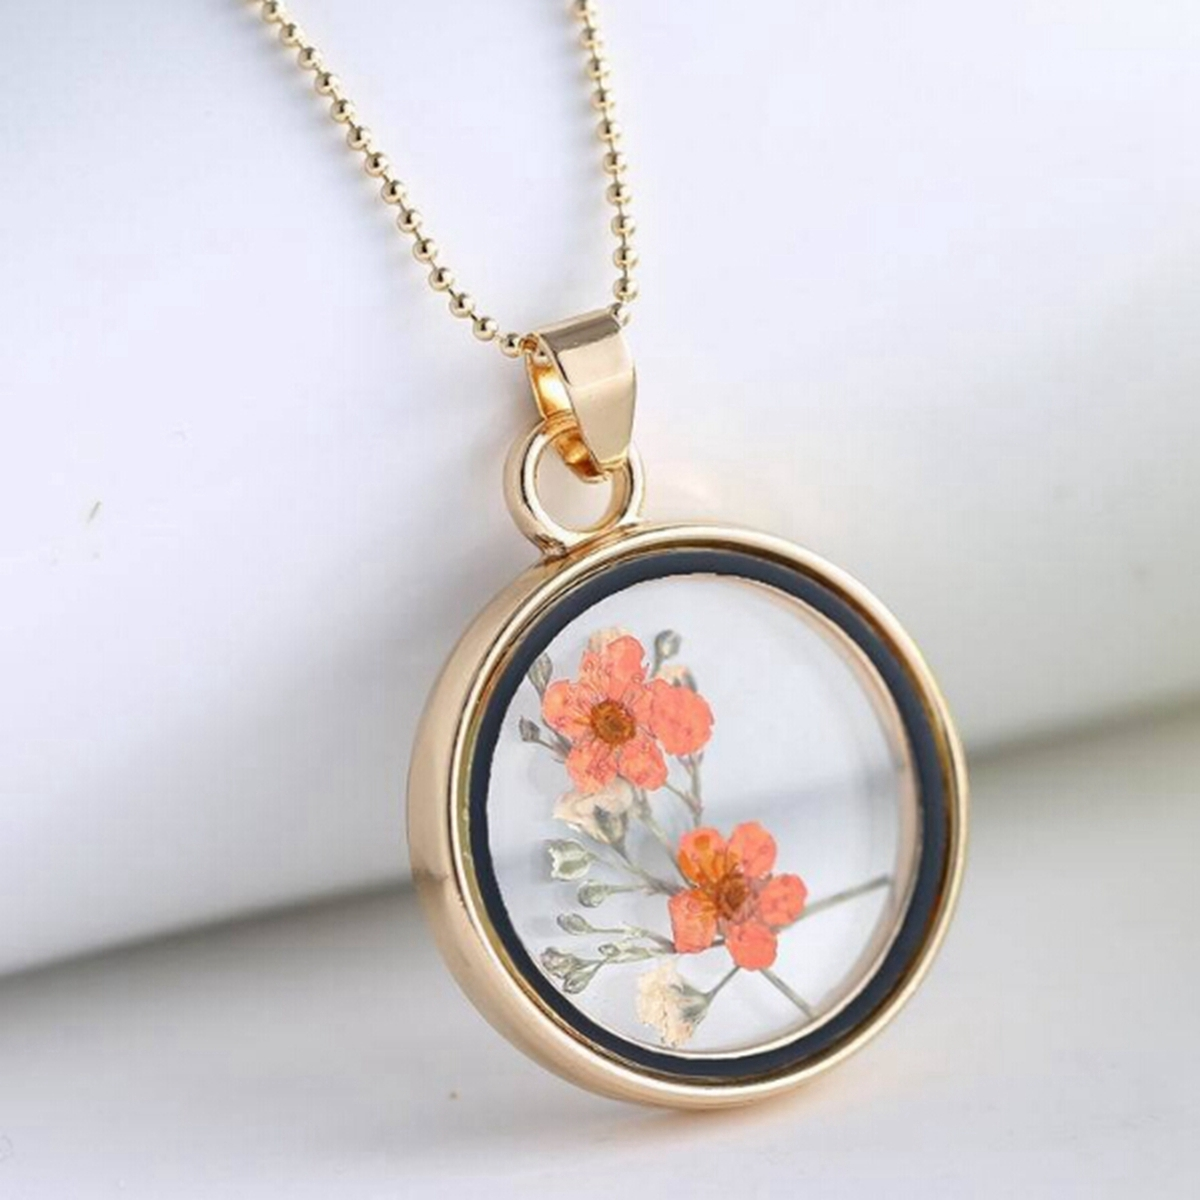 HOT Fashion Jewelry Women Round Glass Dry Flower Pendant Necklace Alloy DIY Decoration Christmas Gift 6 Styles Floral Pattern(China (Mainland))